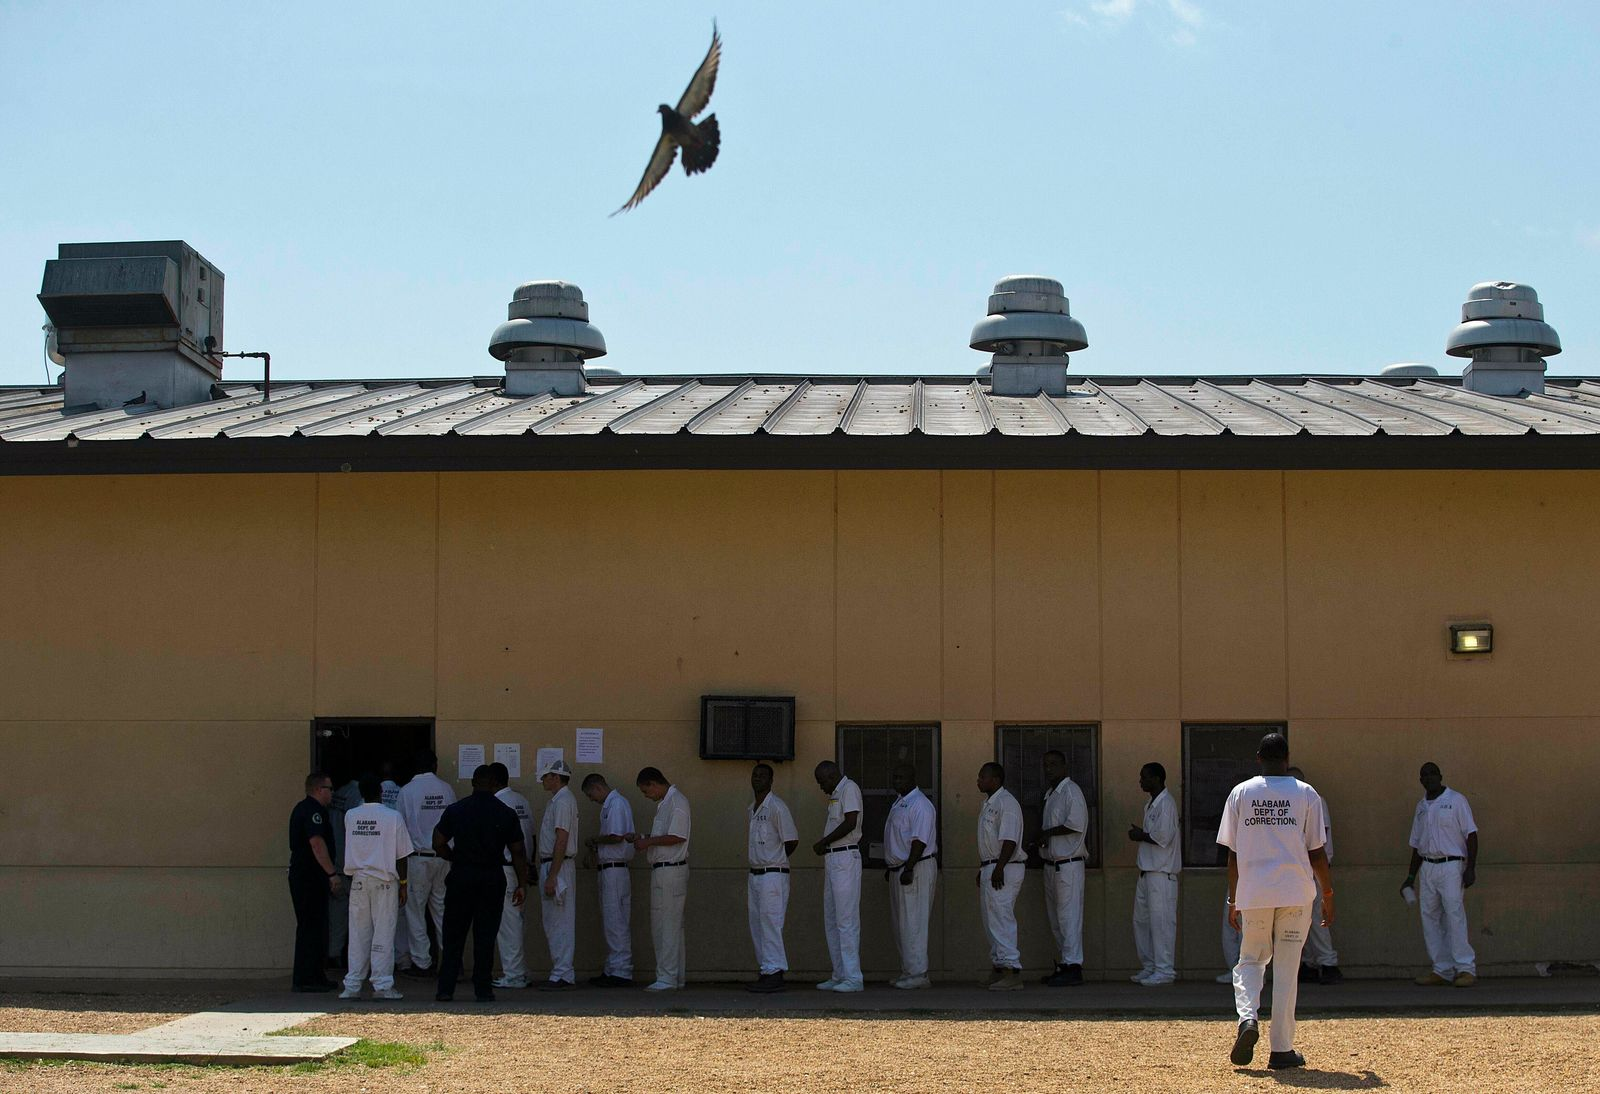 FILE - In this June 18, 2015, file photo, prisoners stand in a crowded lunch line during a prison tour at Elmore Correctional Facility in Elmore, Ala. (AP Photo/Brynn Anderson, File)